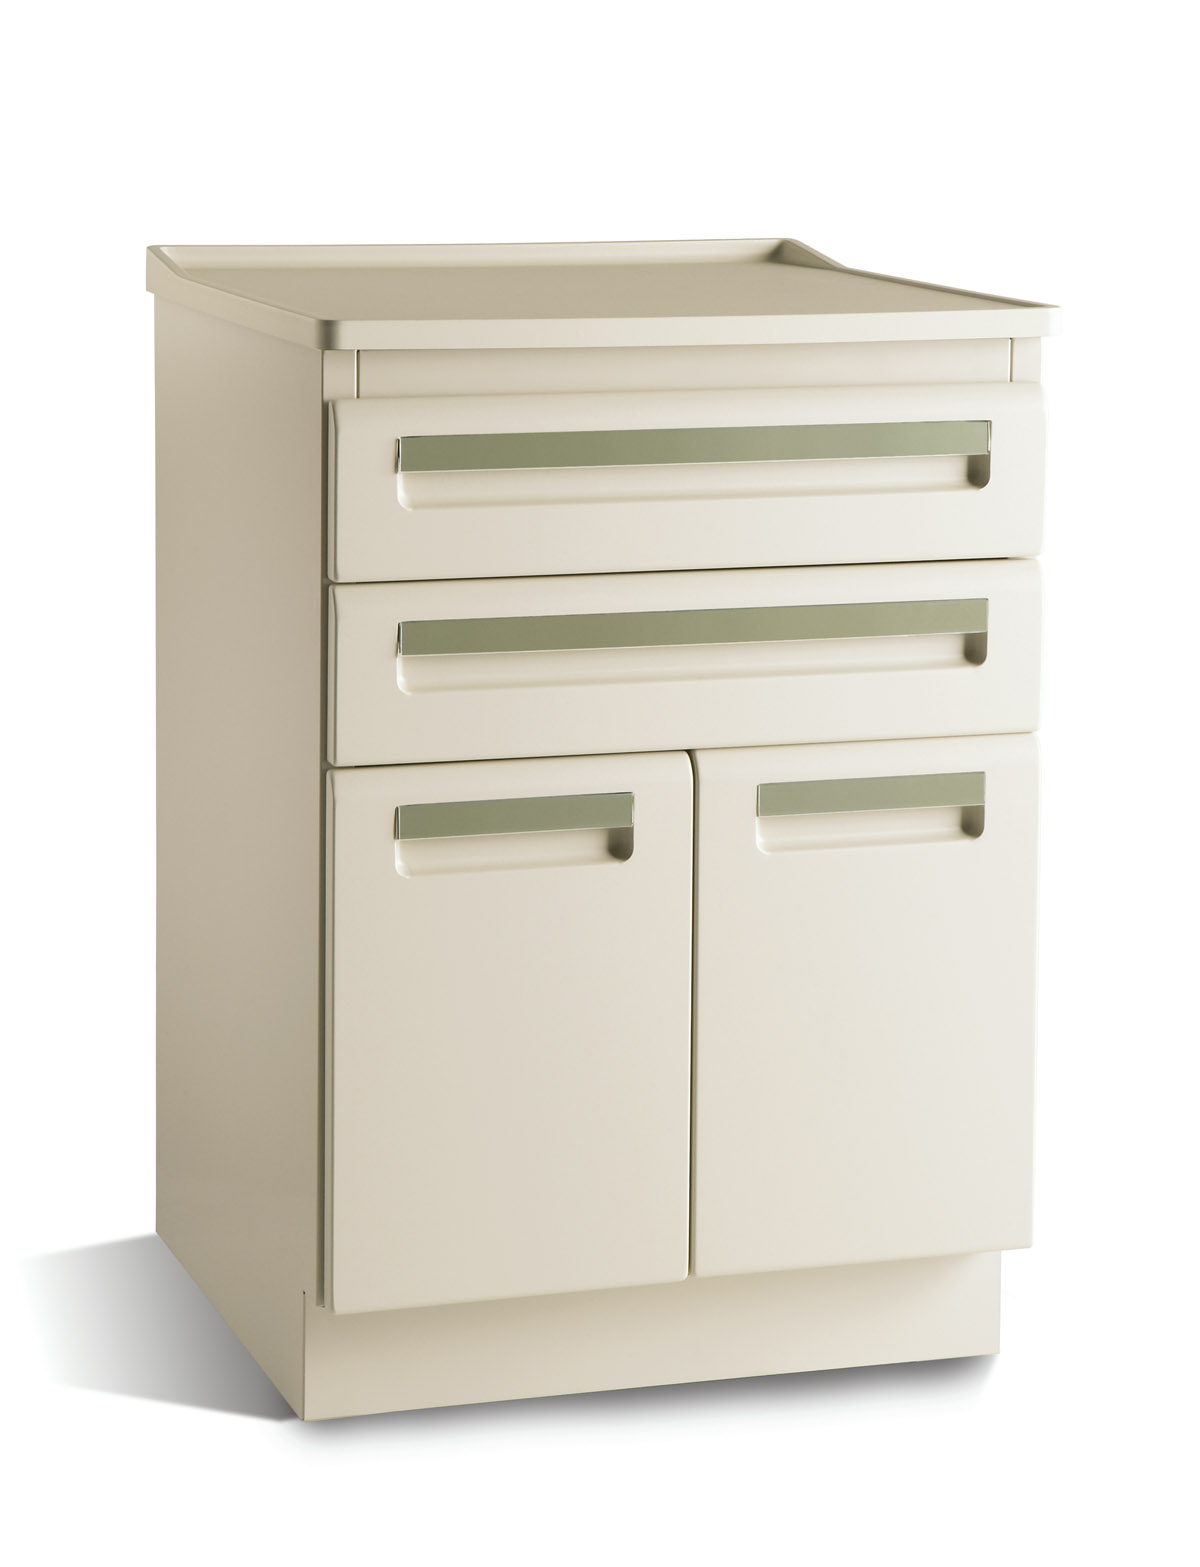 CABINET, TREATMENT, 24x18, 2 DR/2 DRW, FOSSIL GREY